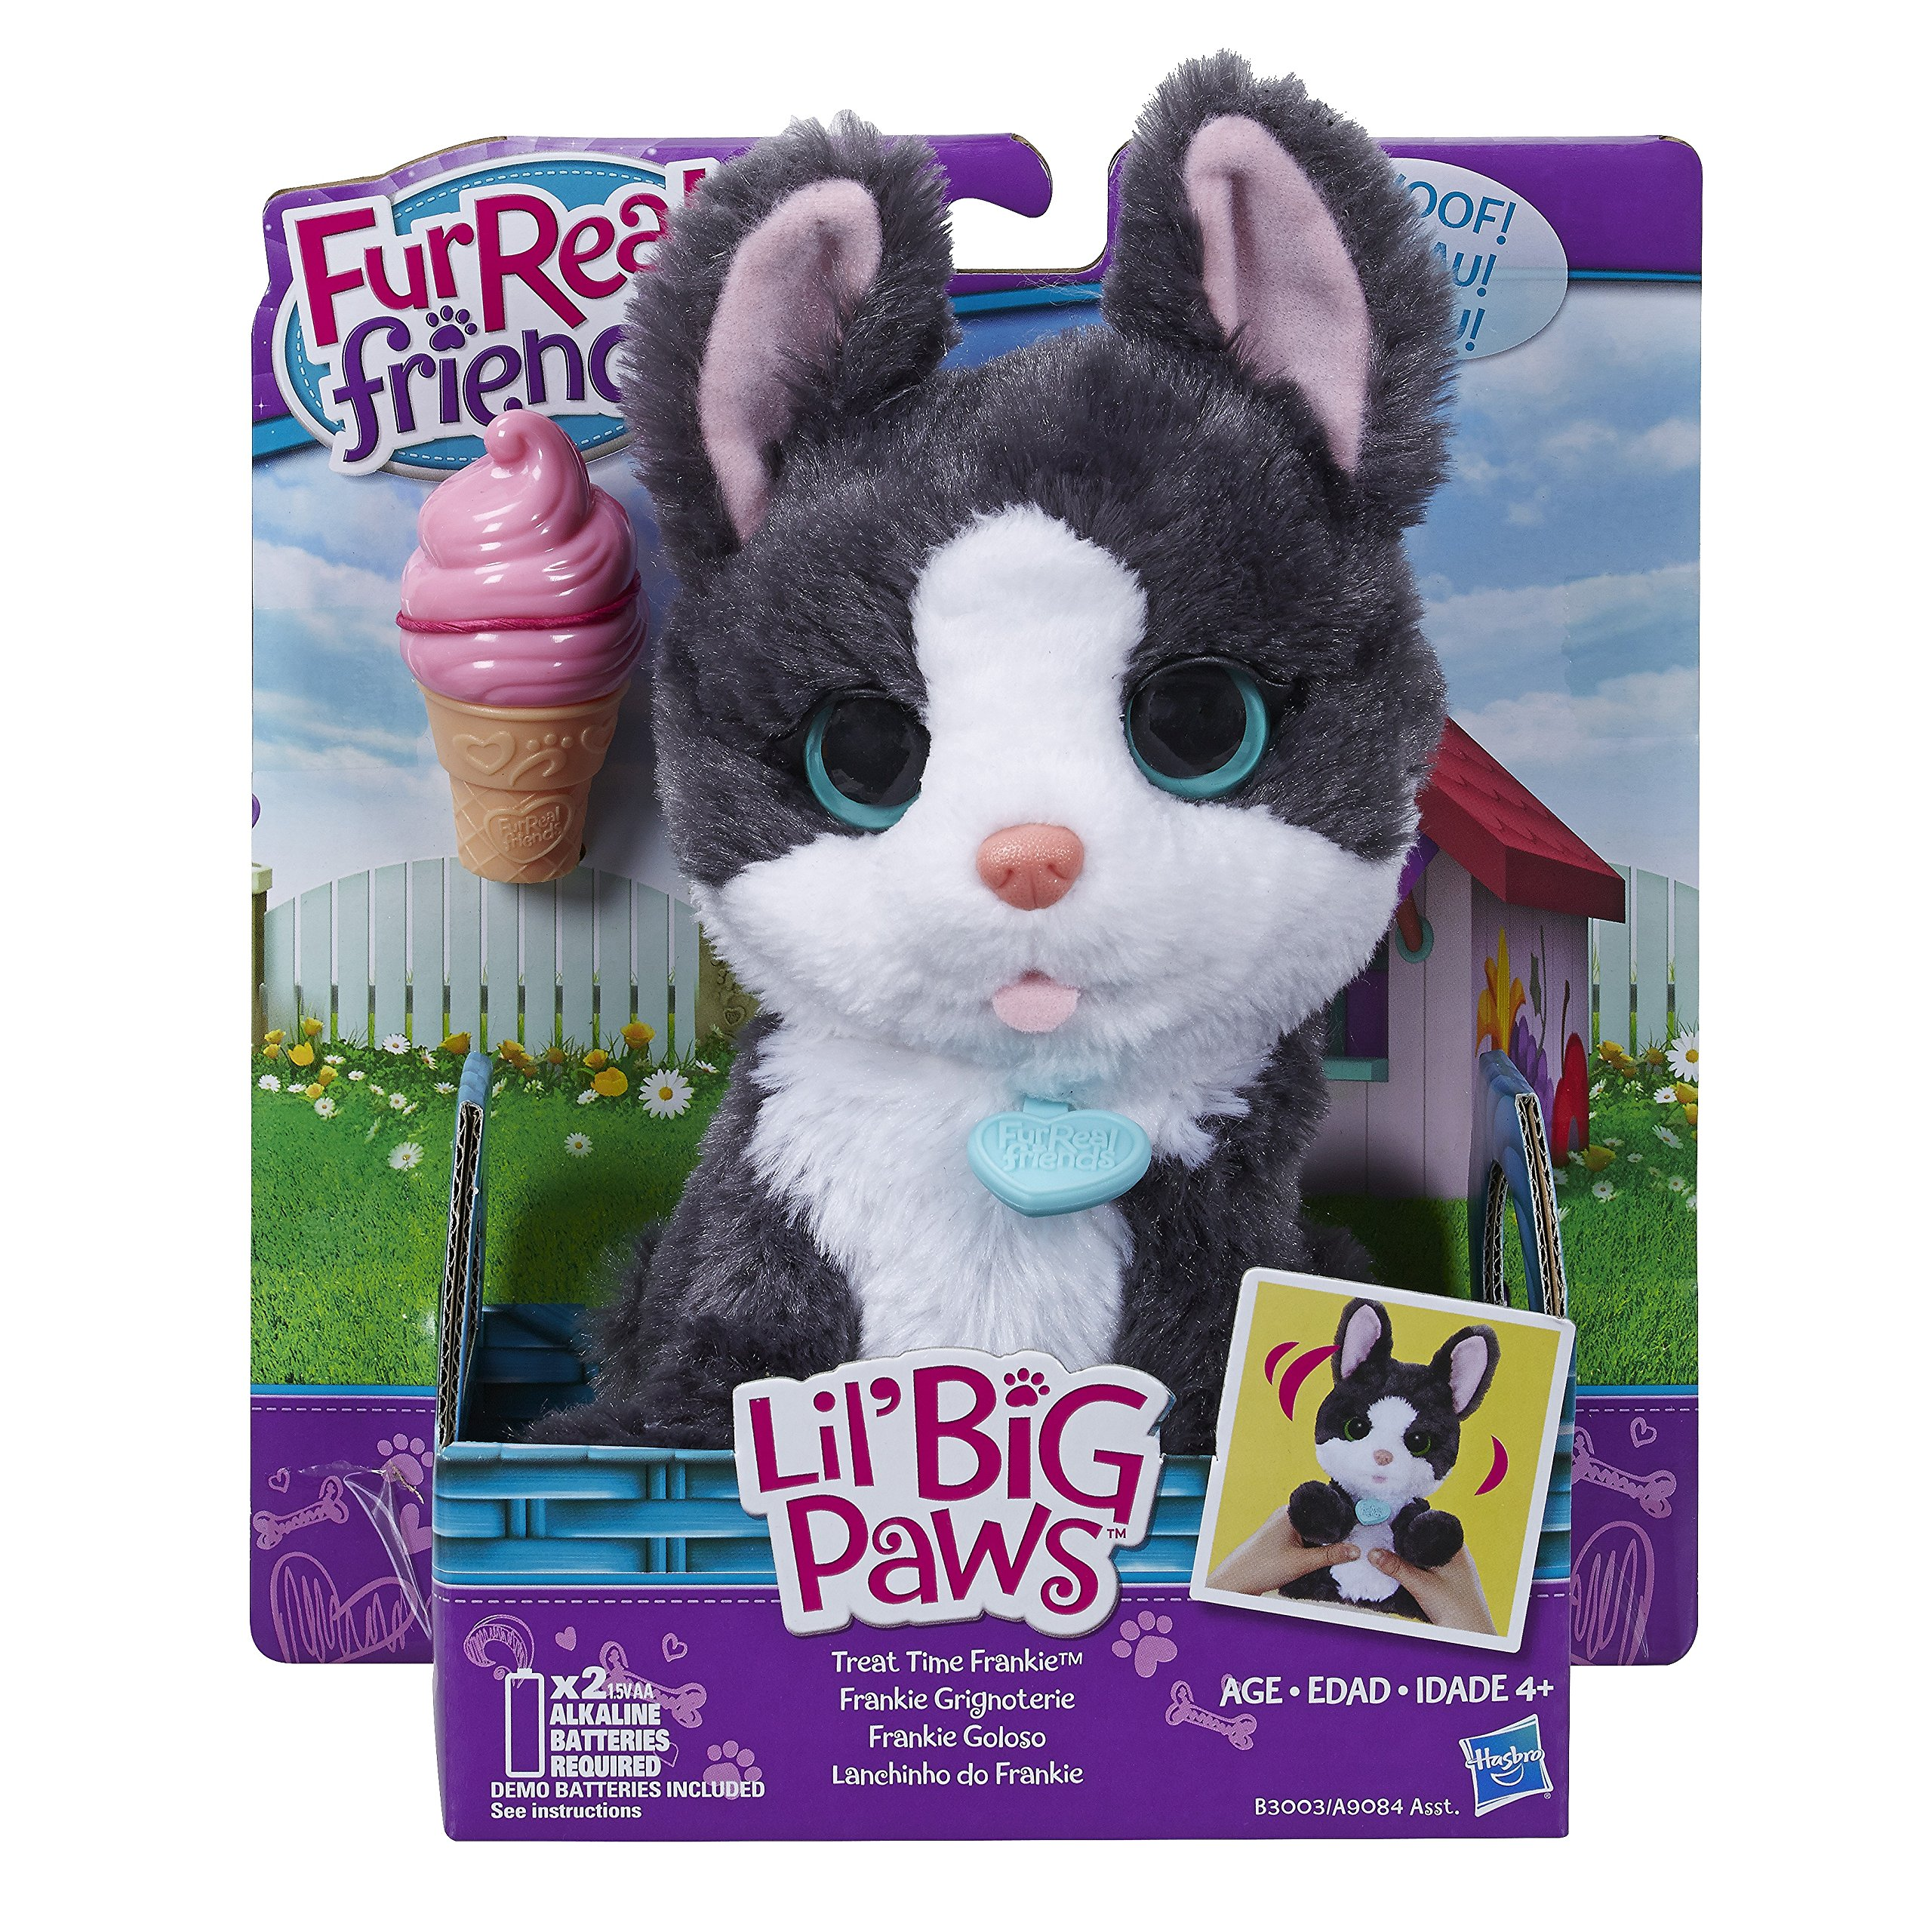 FurReal Friends Li'l Big Paws Treat Time Frankie Pet by FurReal (Image #2)